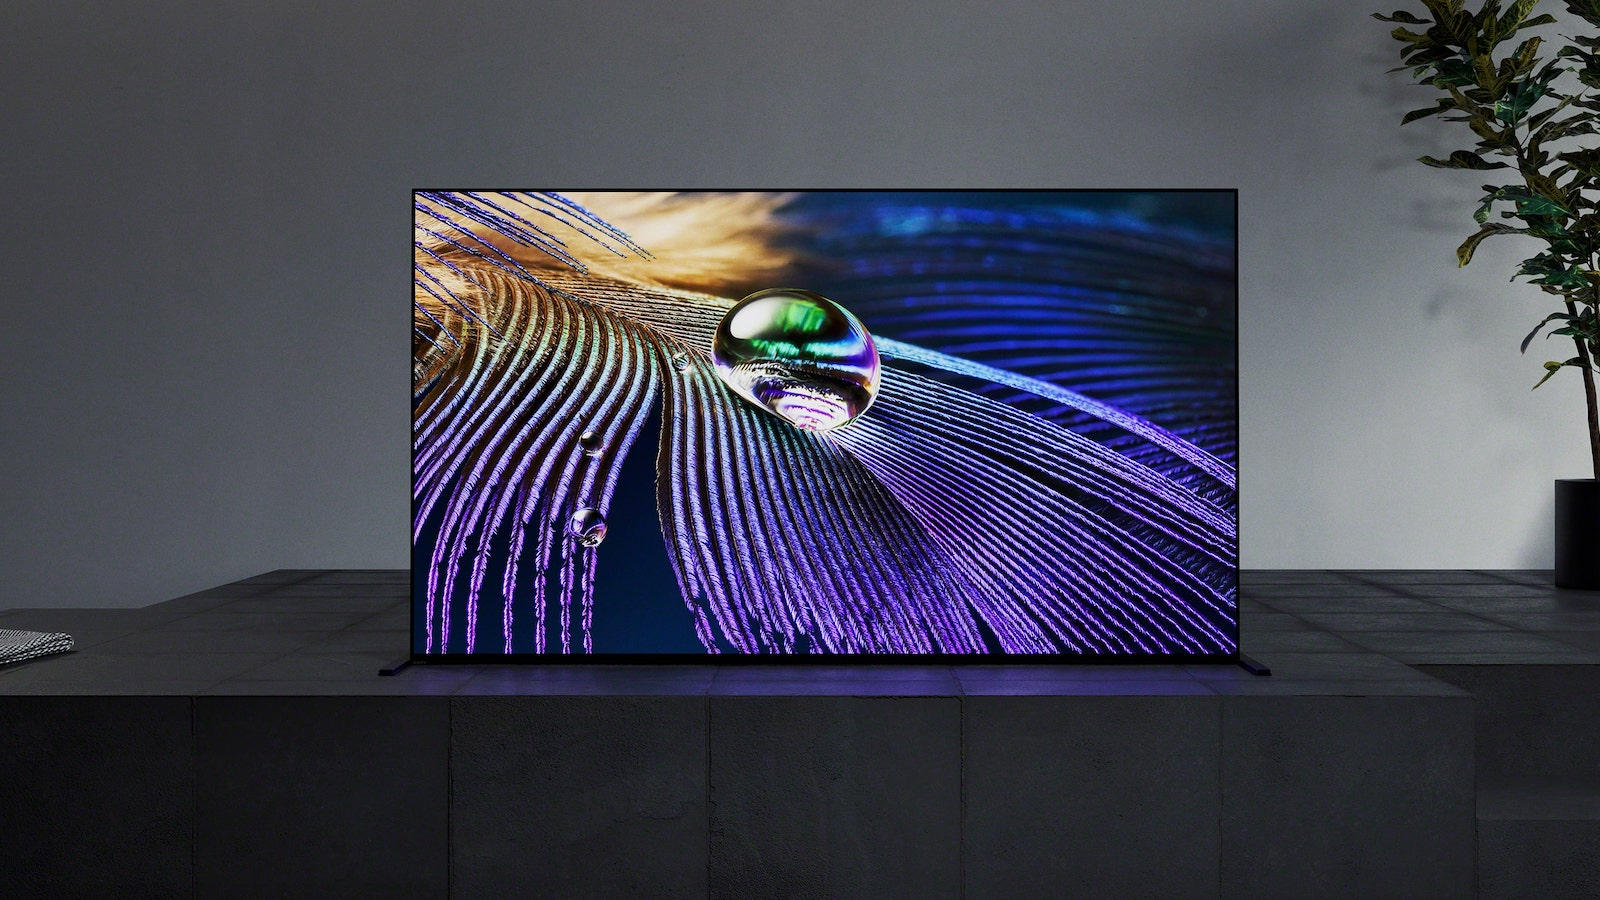 Sony BRAVIA XR MASTER Series A90J OLED TV has a seamless edge design